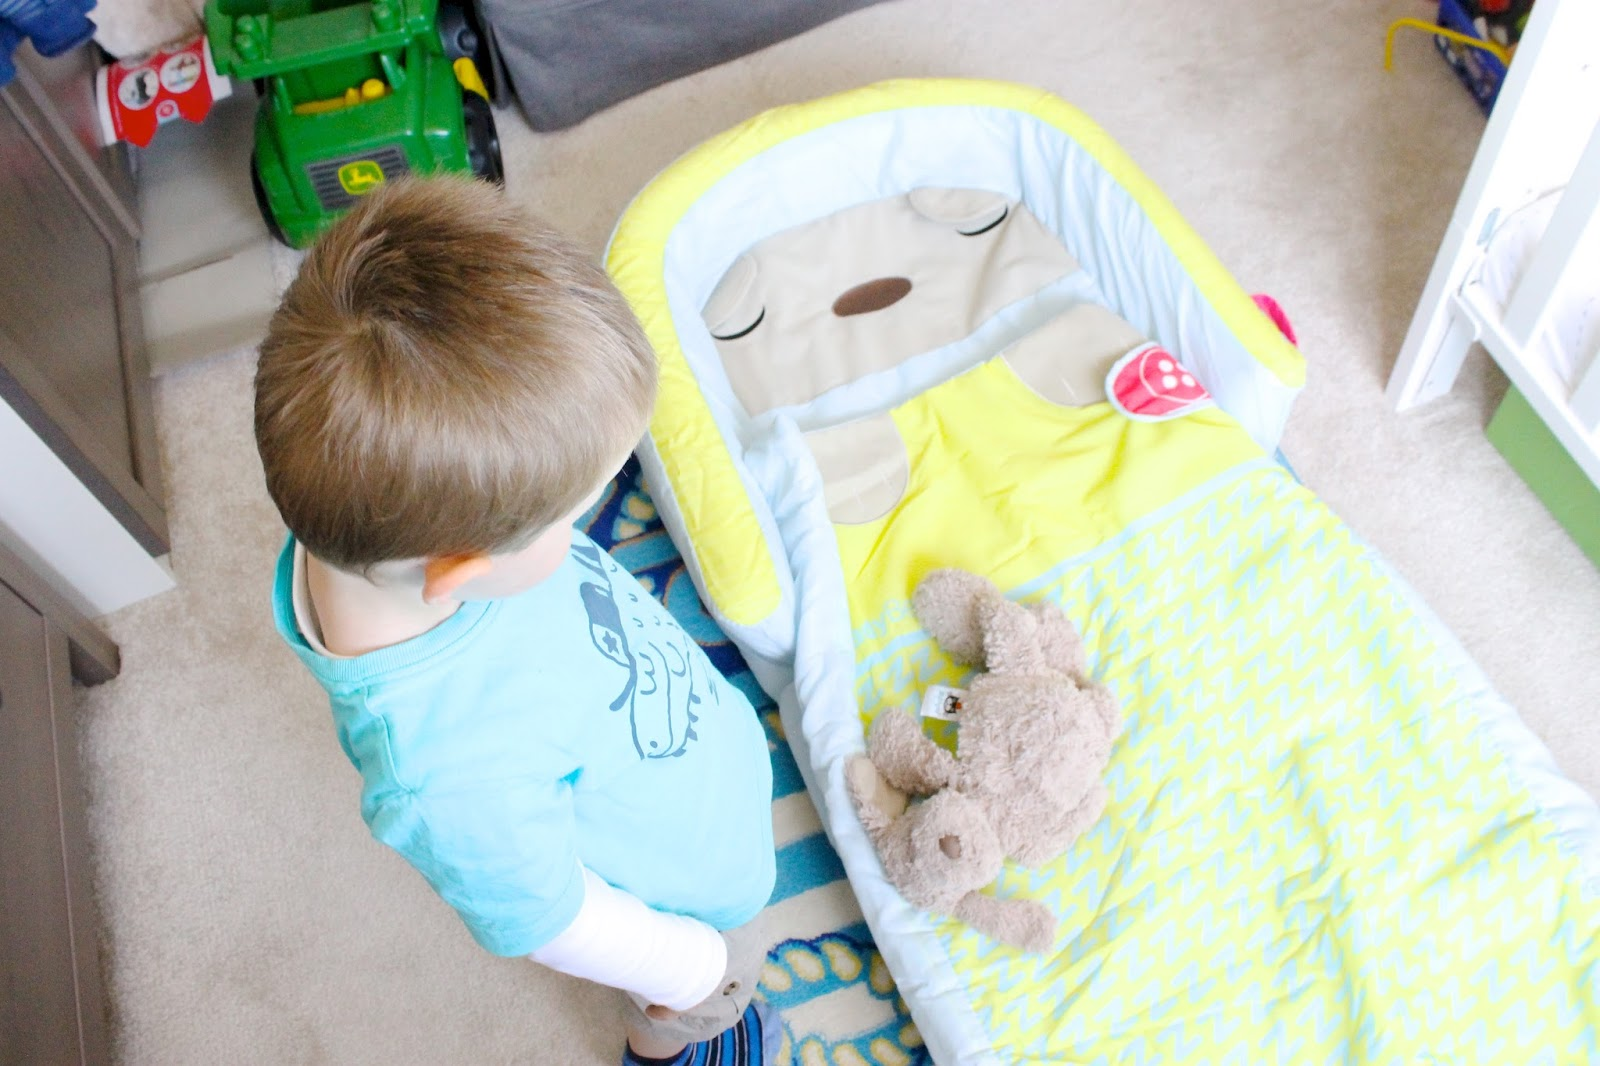 ReadyBed, Toddler blow up bed, Kids blow up bed, My First ReadyBed